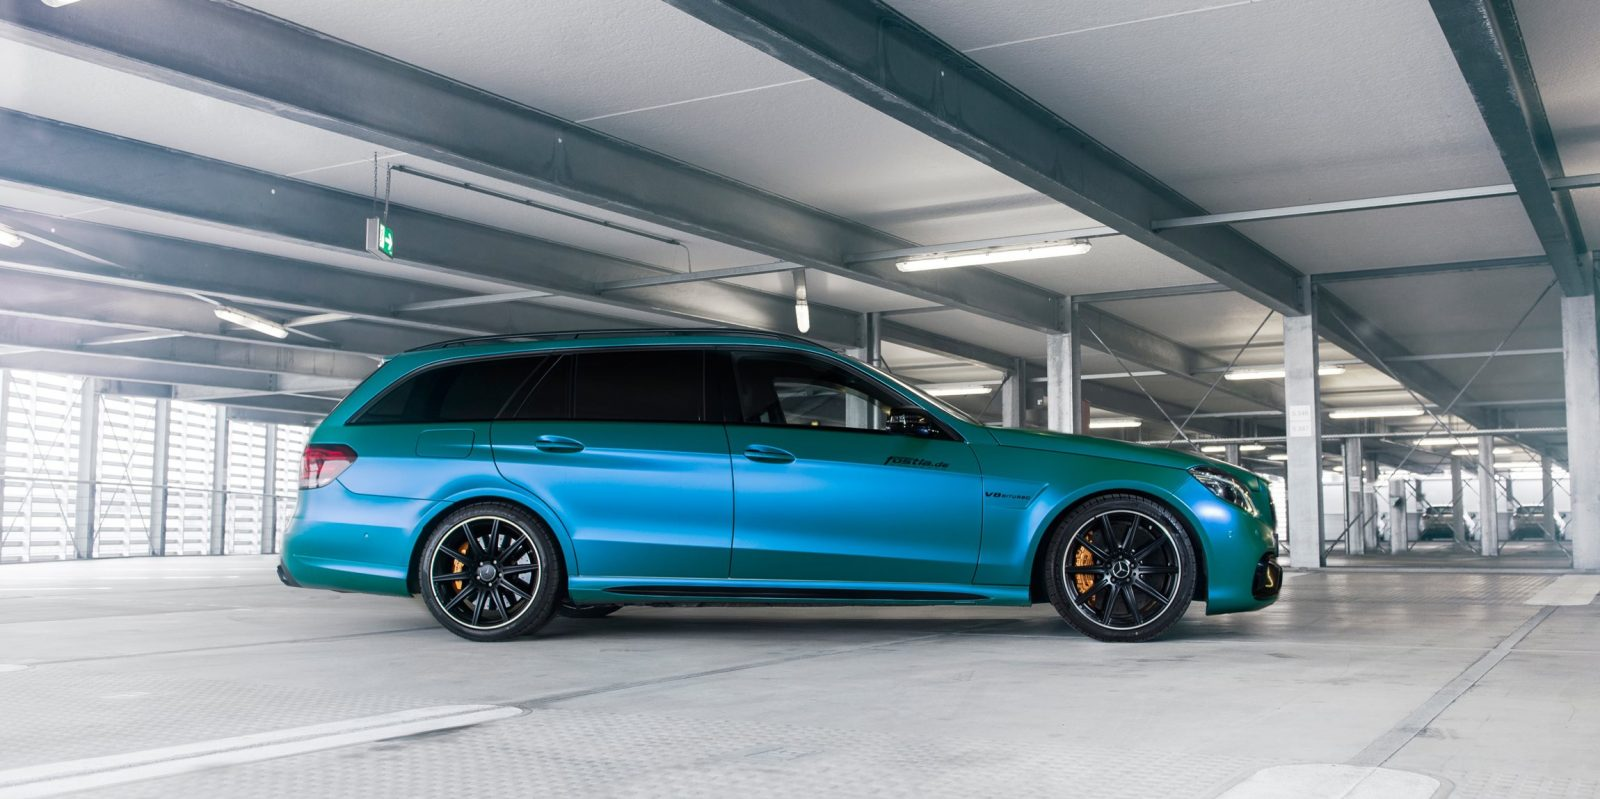 3 3s 193mph 2016 Mercedes Amg E63s Estate By Fostla De